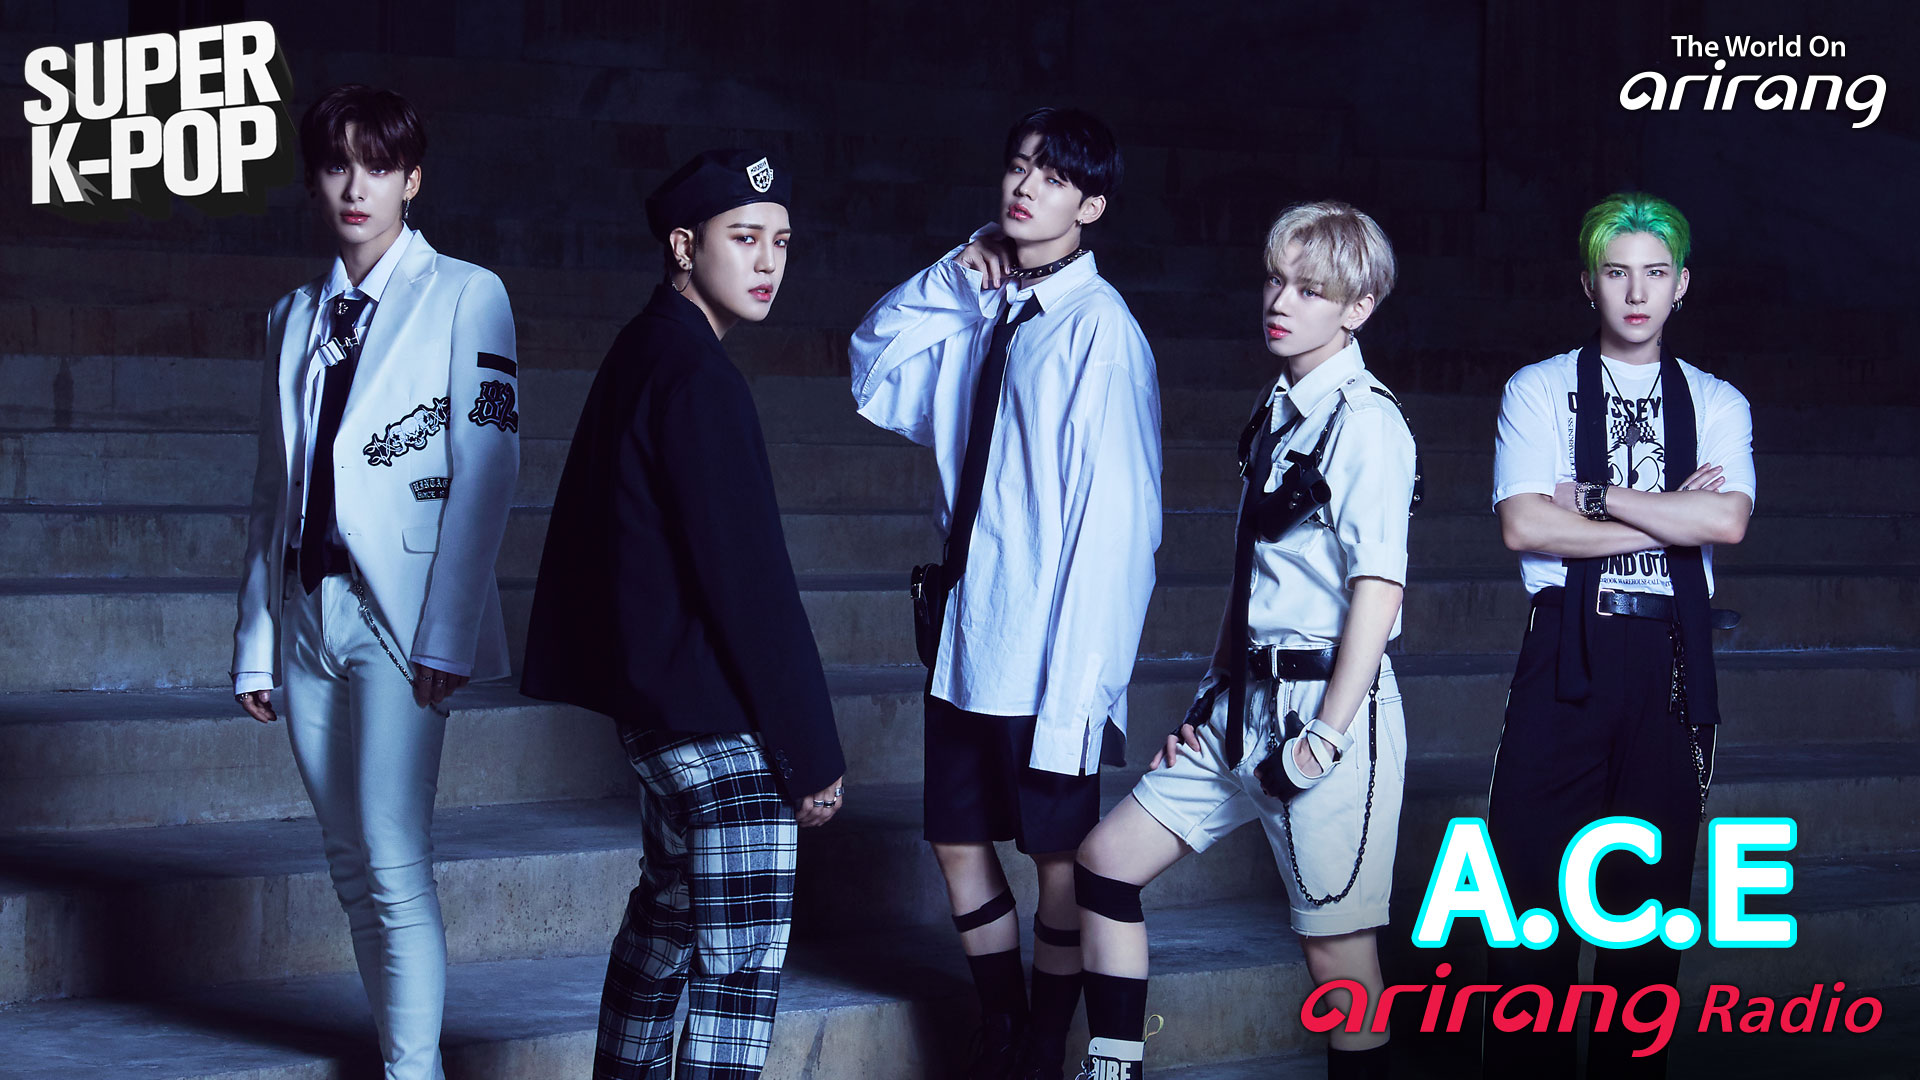 Arirang Radio (Super K-Pop / A.C.E 에이스)